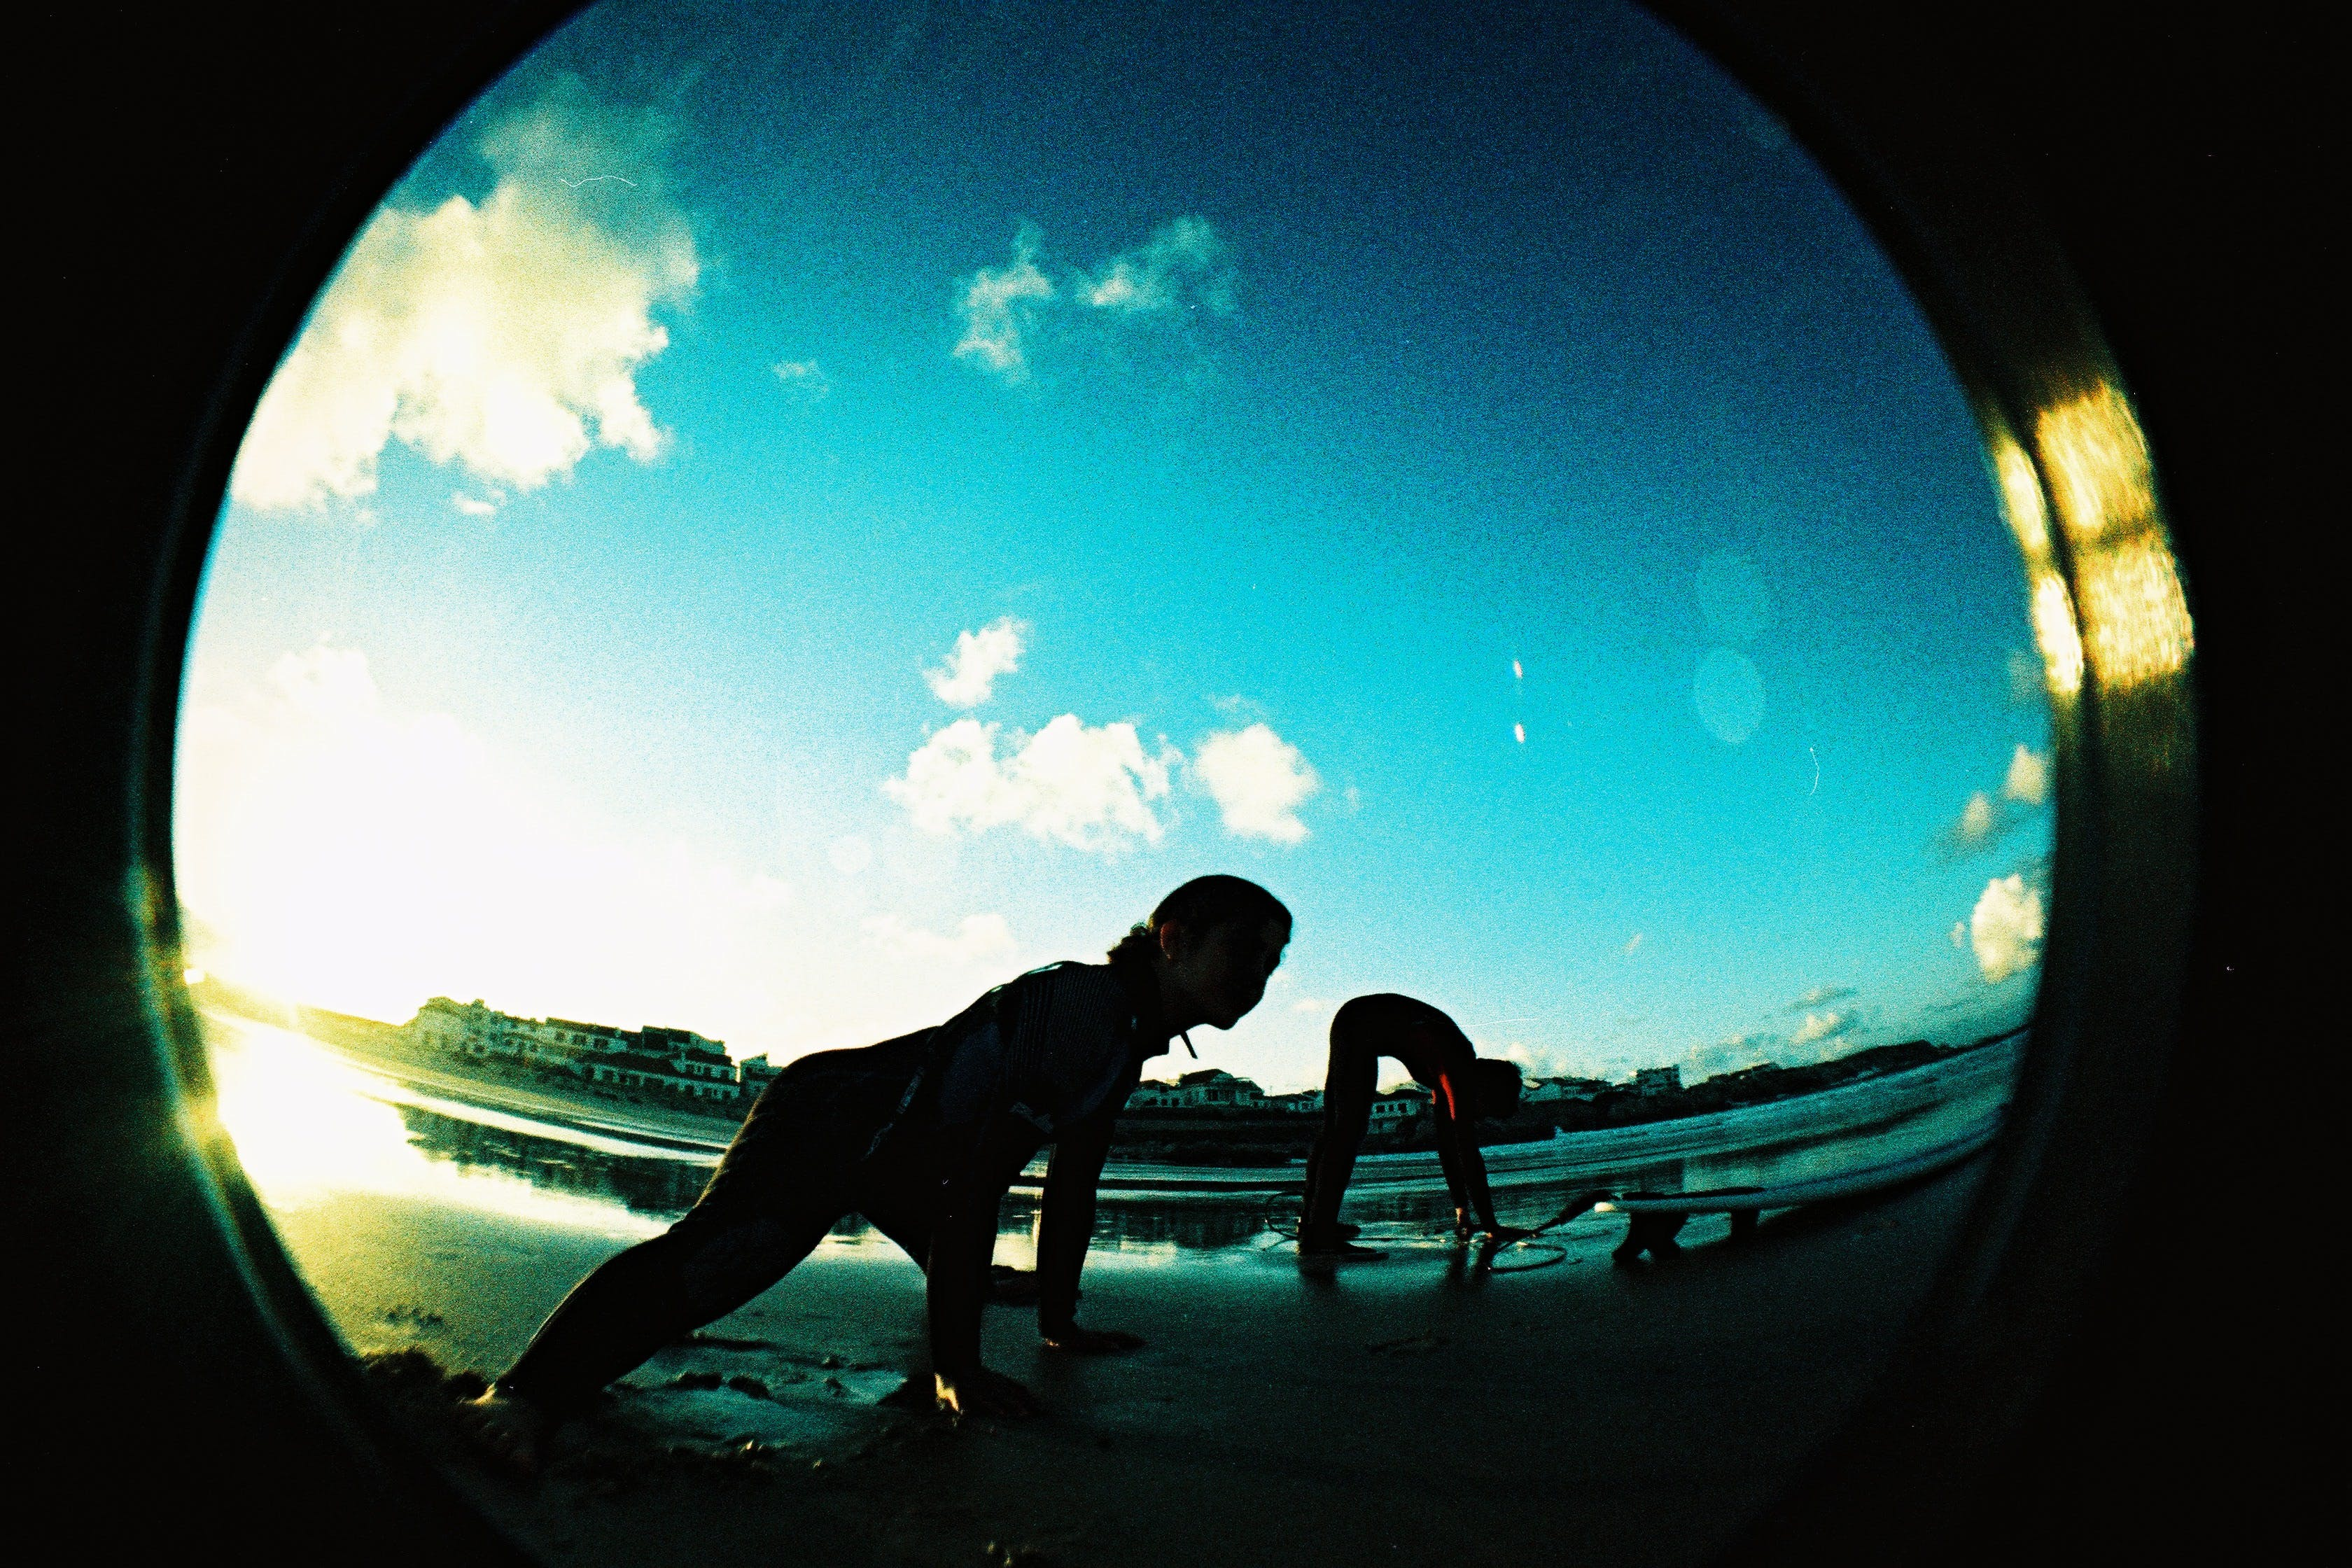 Fisheye Lens Showing Person at Daytime